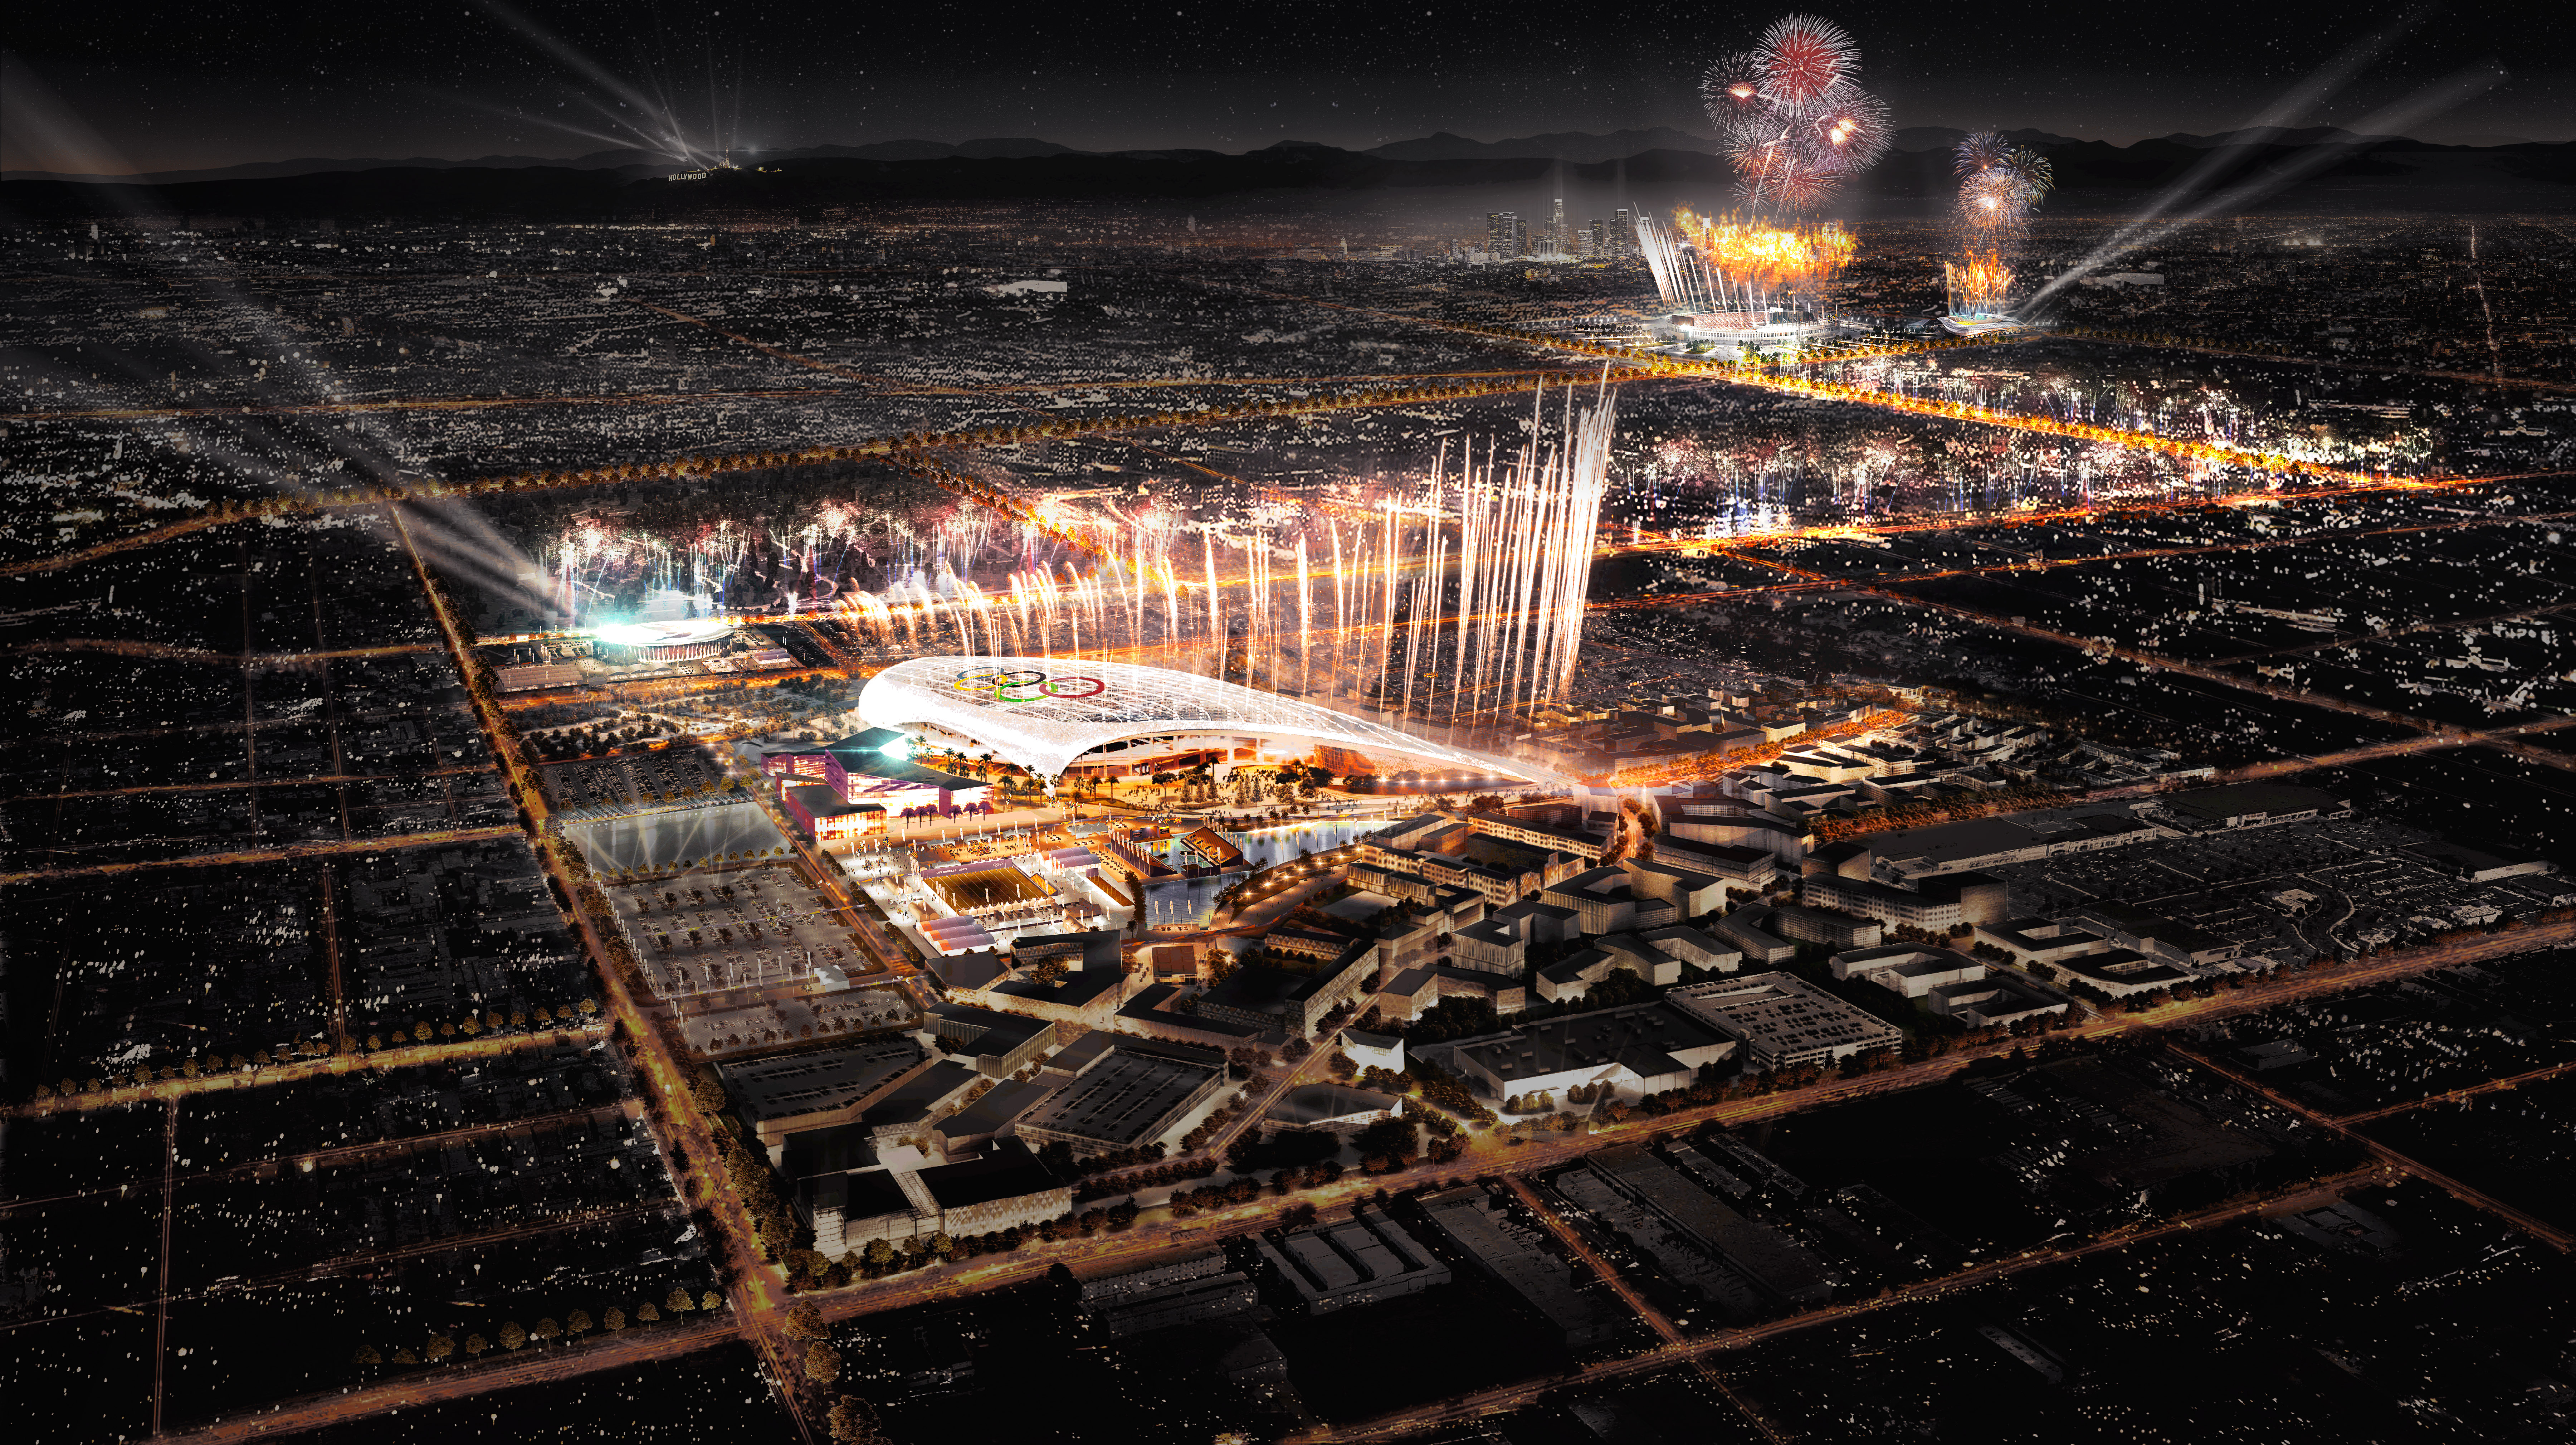 LA 2028 Olympics: Mapping the sites of the Los Angeles Summer Games - Curbed LA